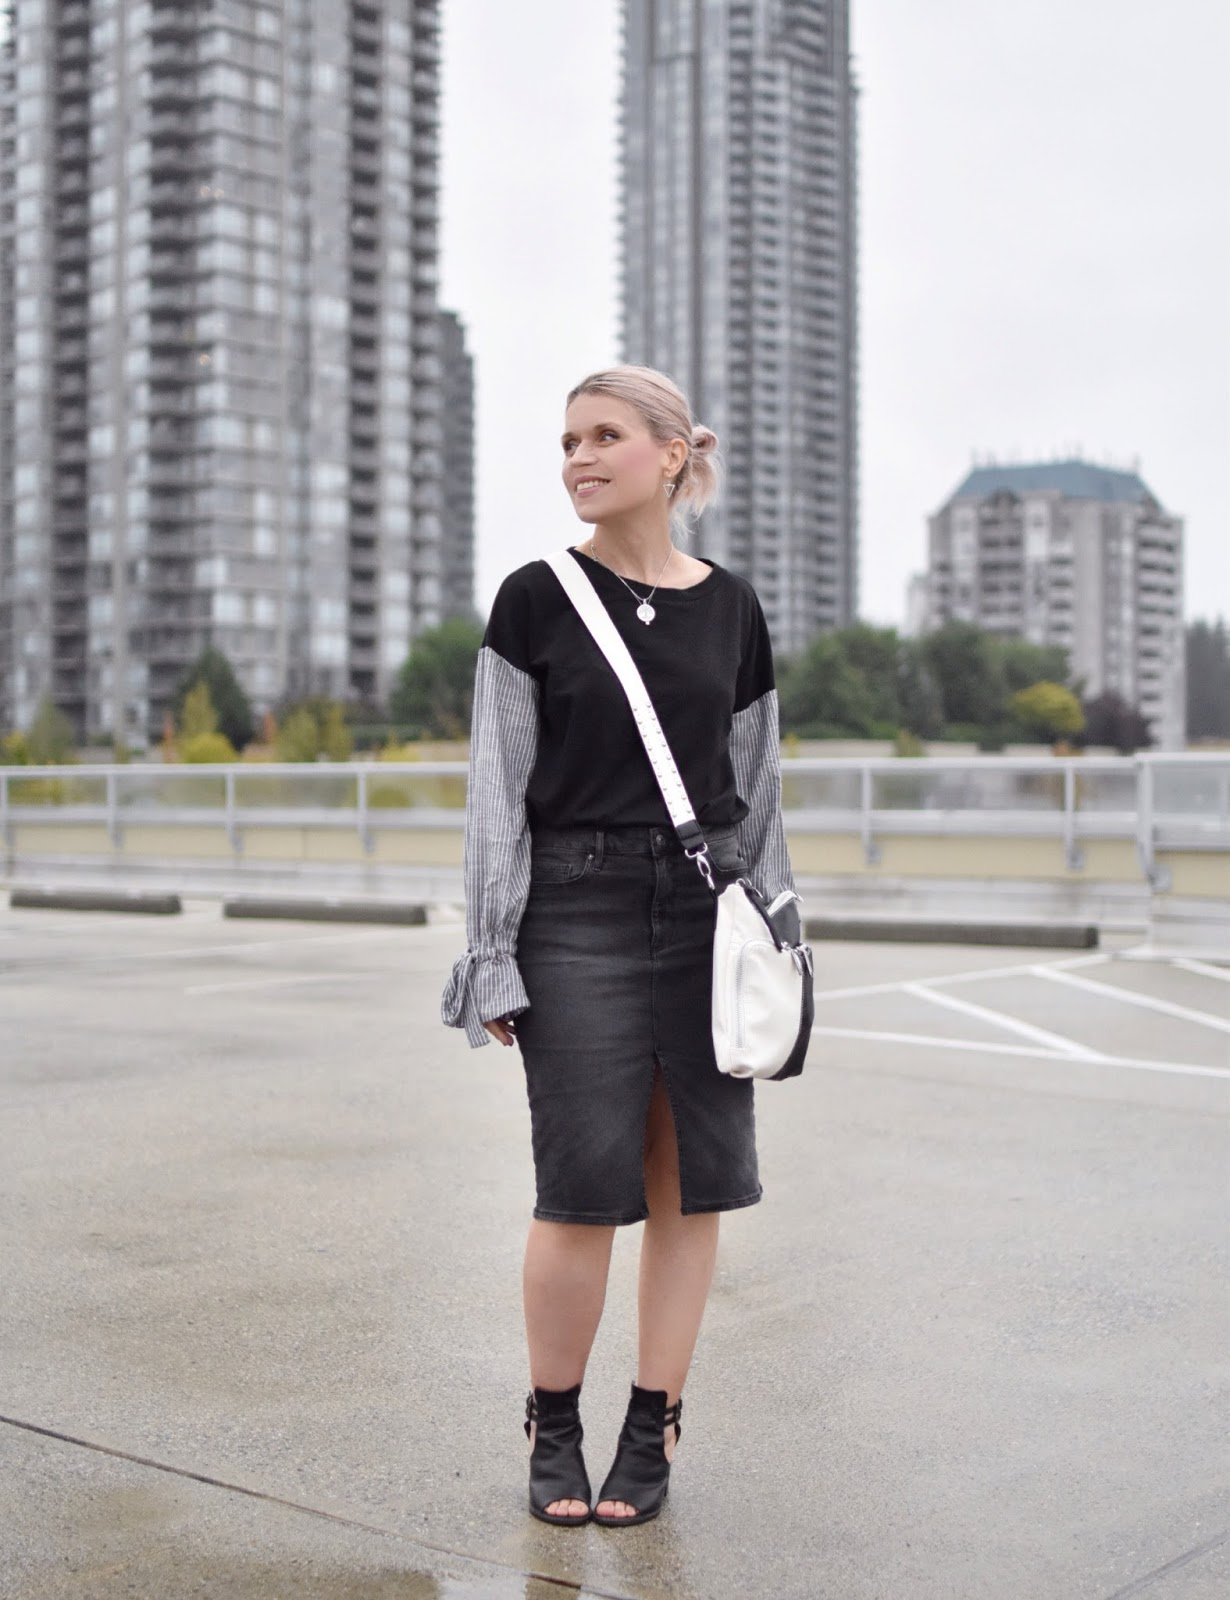 Monika Faulkner outfit inspiration - sweatshirt with mixed media sleeves, black denim skirt, cut-out booties, and a cross-body bag